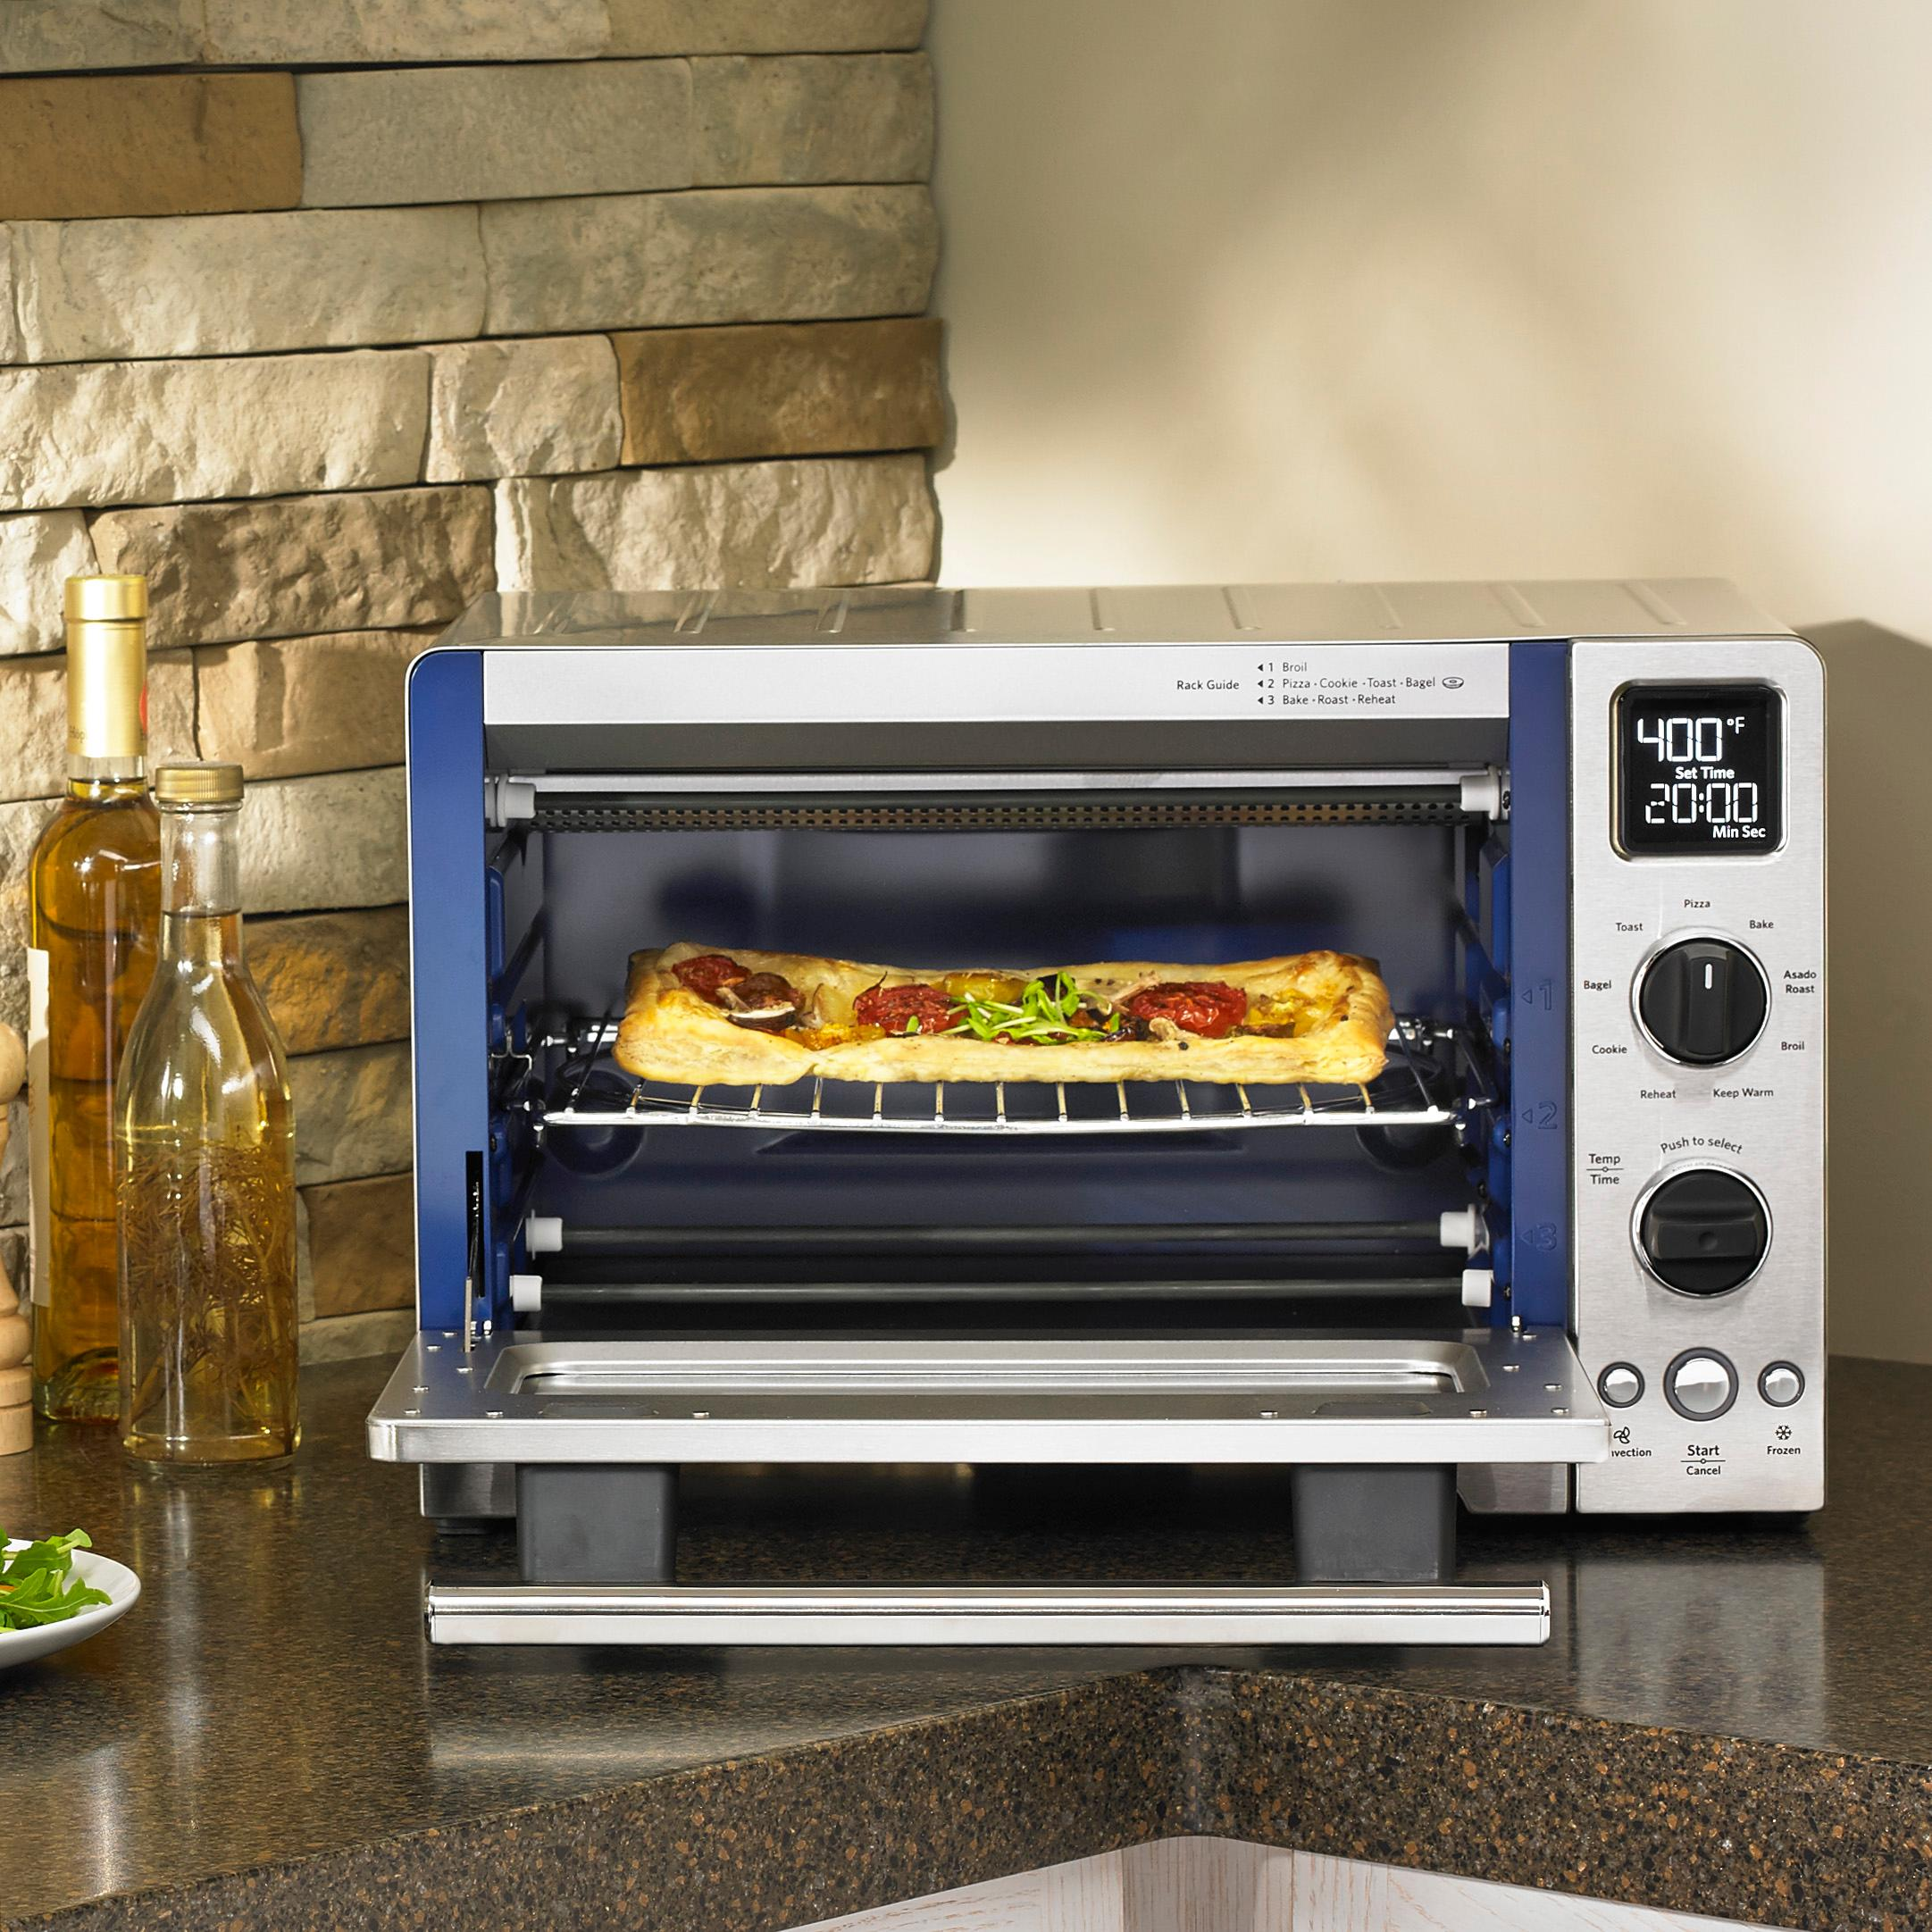 Countertop Ovens For Baking Amazon Kitchenaid Kco273ss 12 Quot Convection Bake